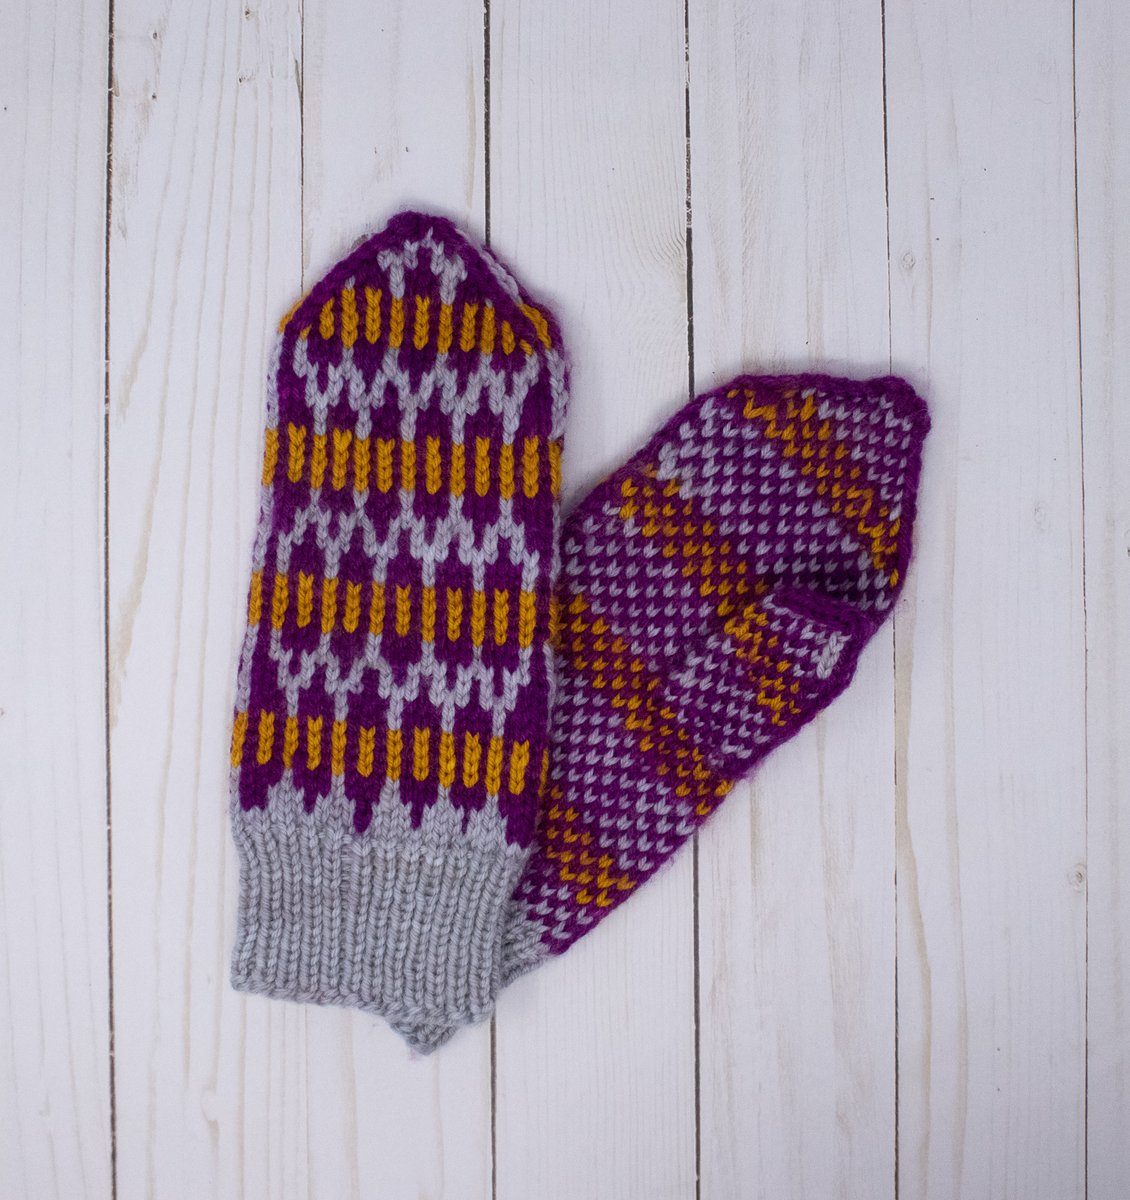 Toasty #mittens from @wildfibersyarns and all yours with a #slowyarncrawl passport.  (I'm pretty sure WildFibers has some passports available too! More info at https://t.co/PuTuLnEwax https://t.co/qVLyHlCQzd